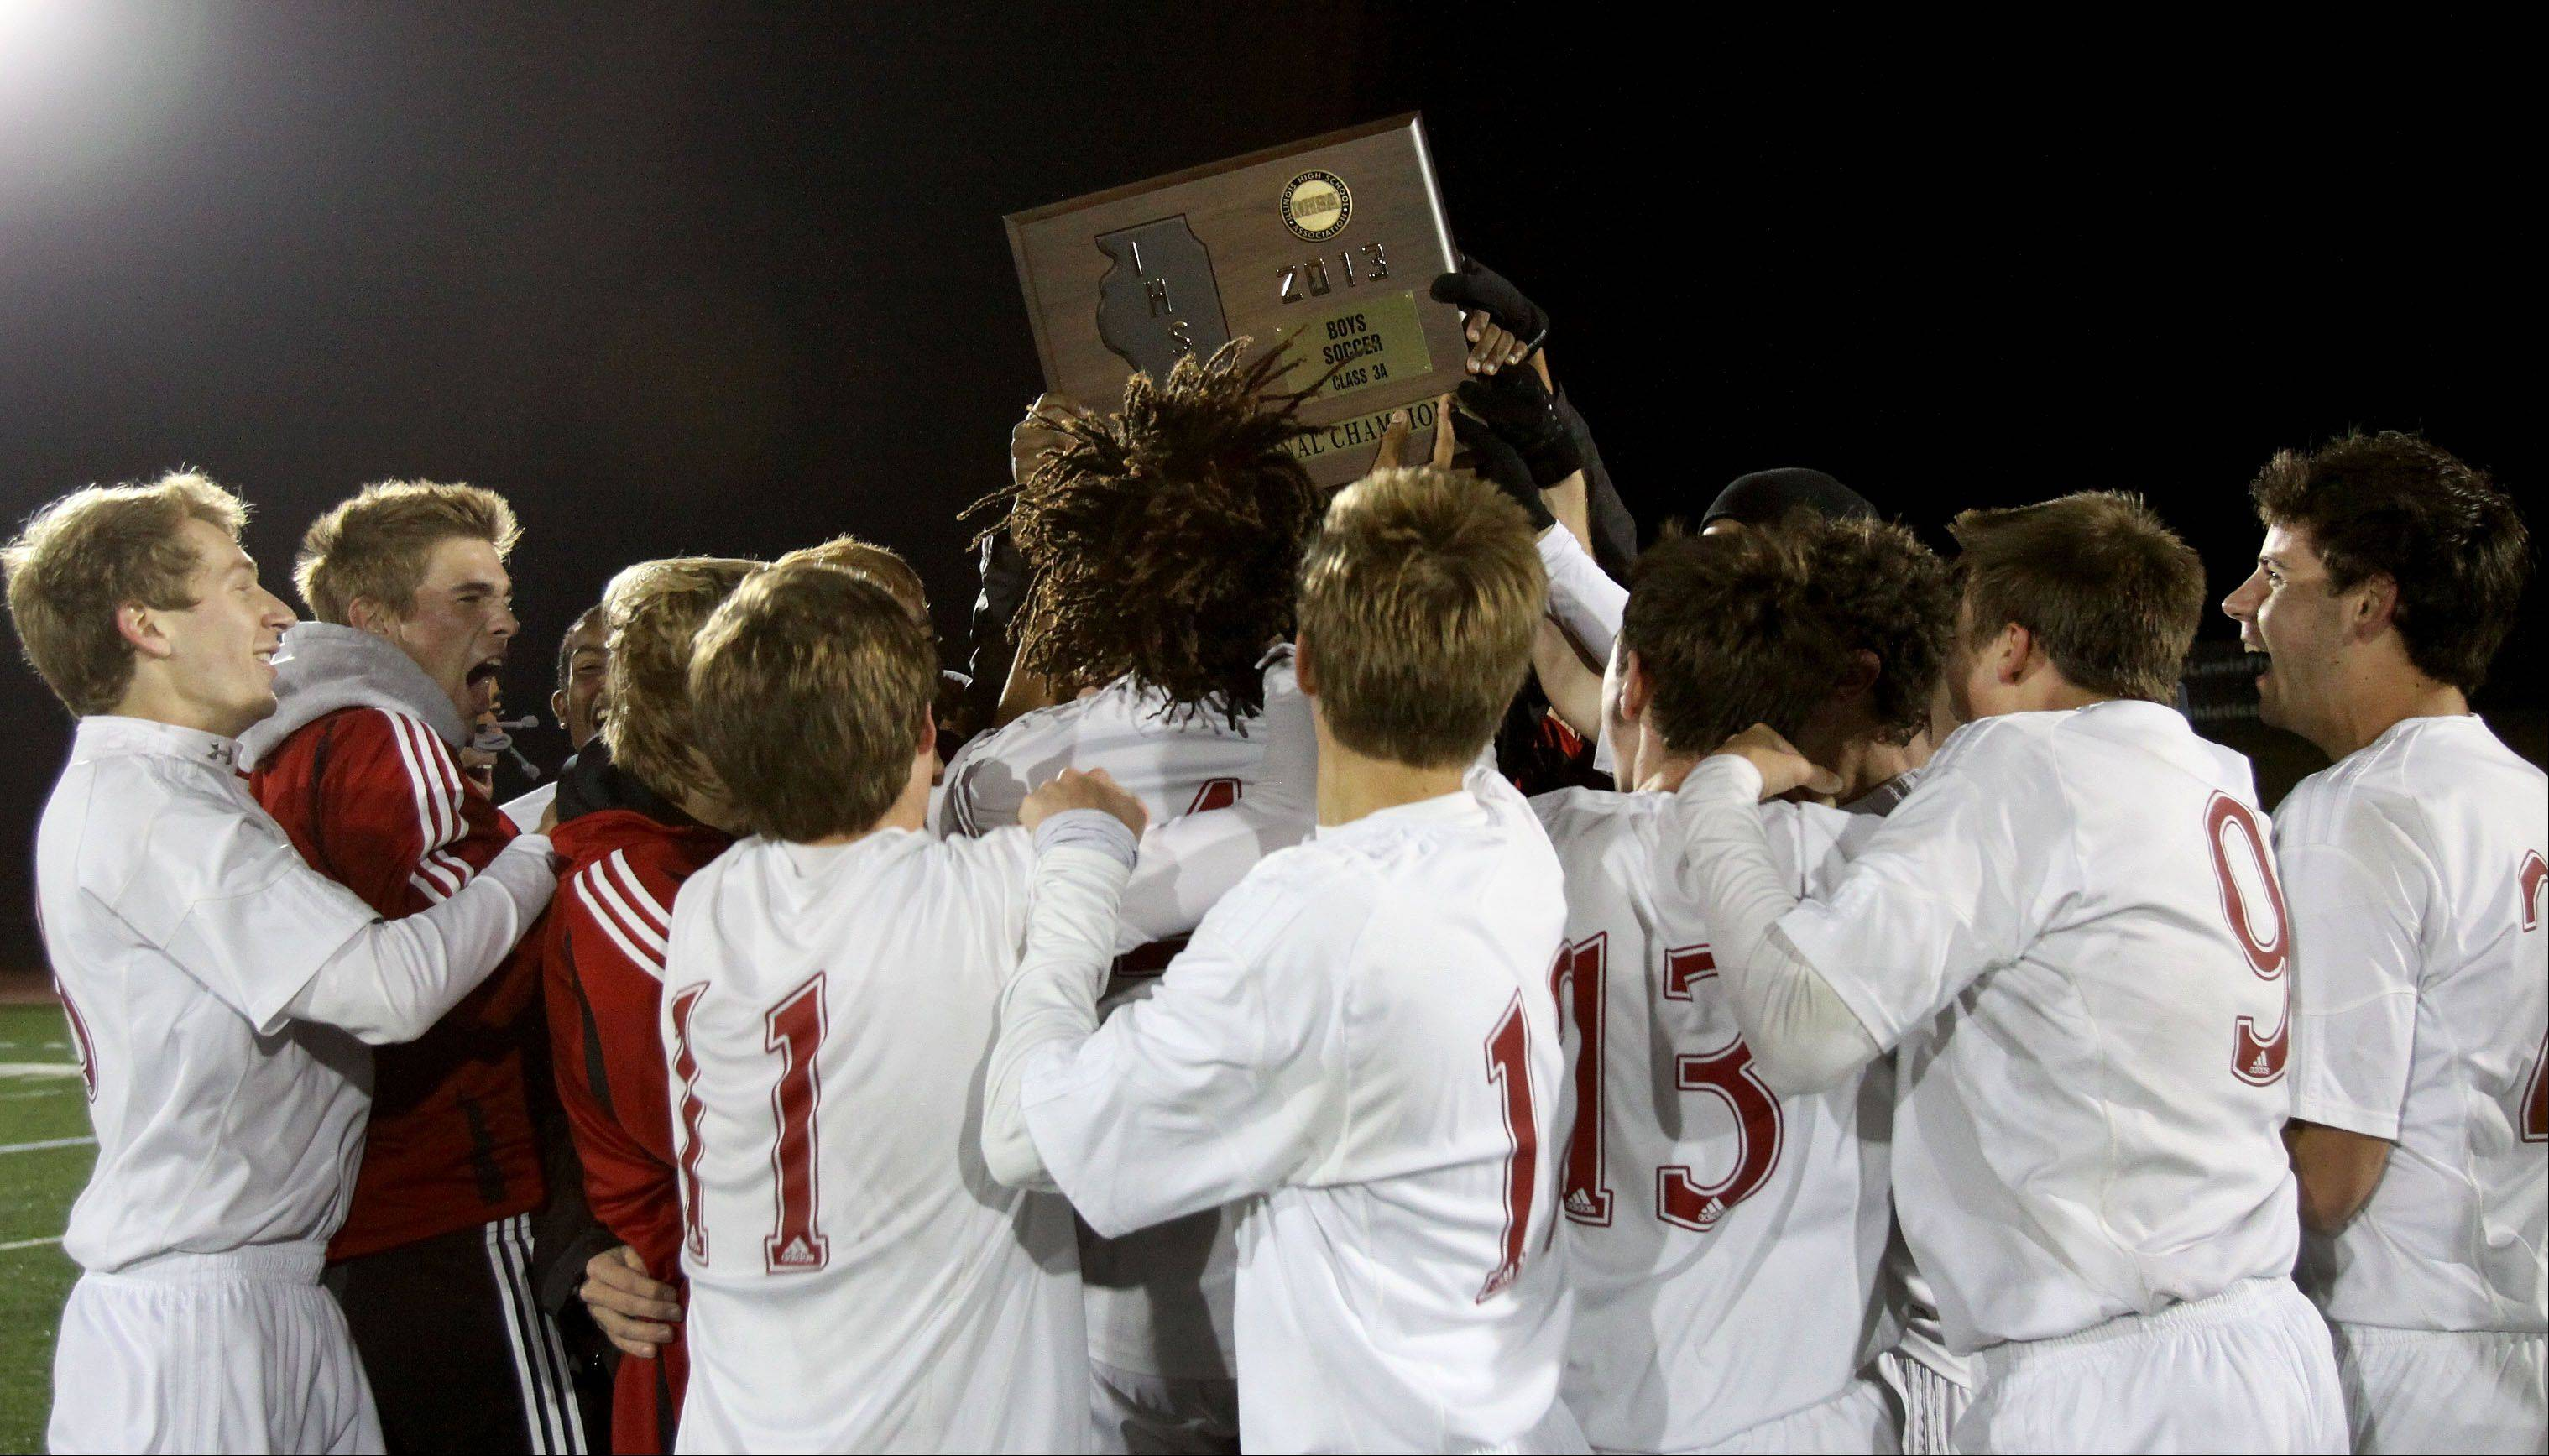 Naperville Central won 2-0 over Morton during Class 3A super-sectional soccer in Romeoville on Tuesday.